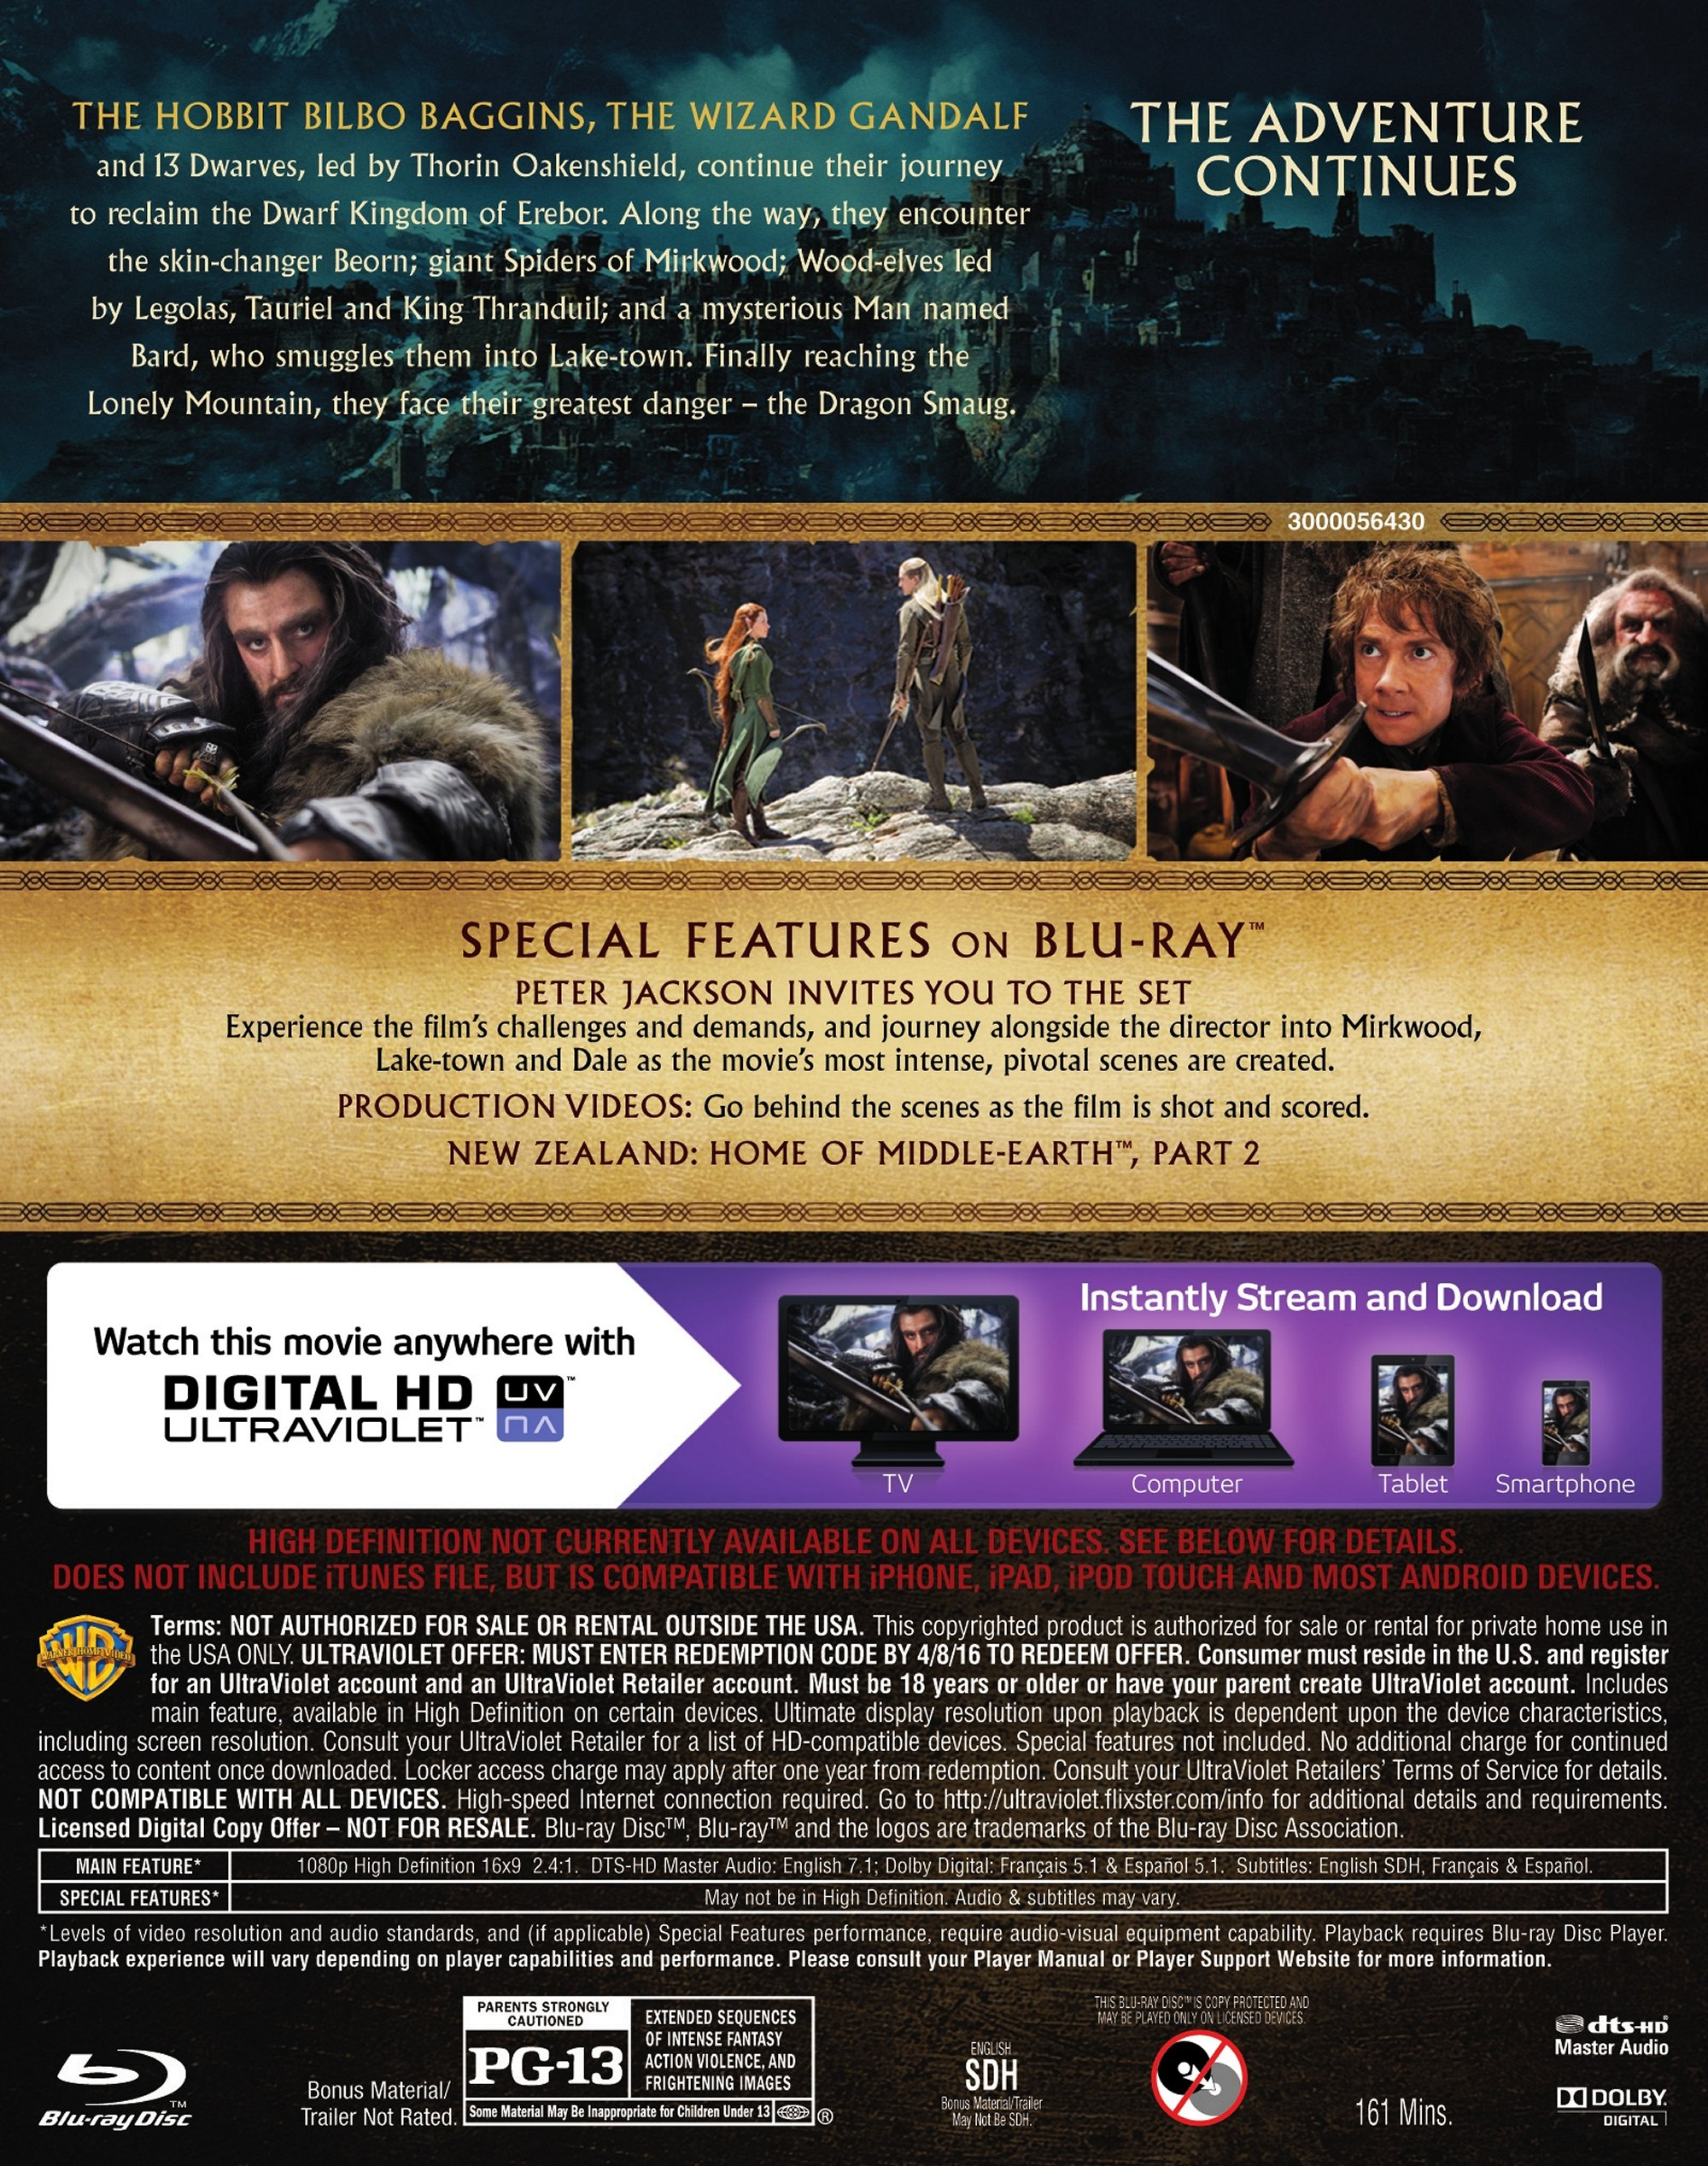 TheHobbit2(Back)